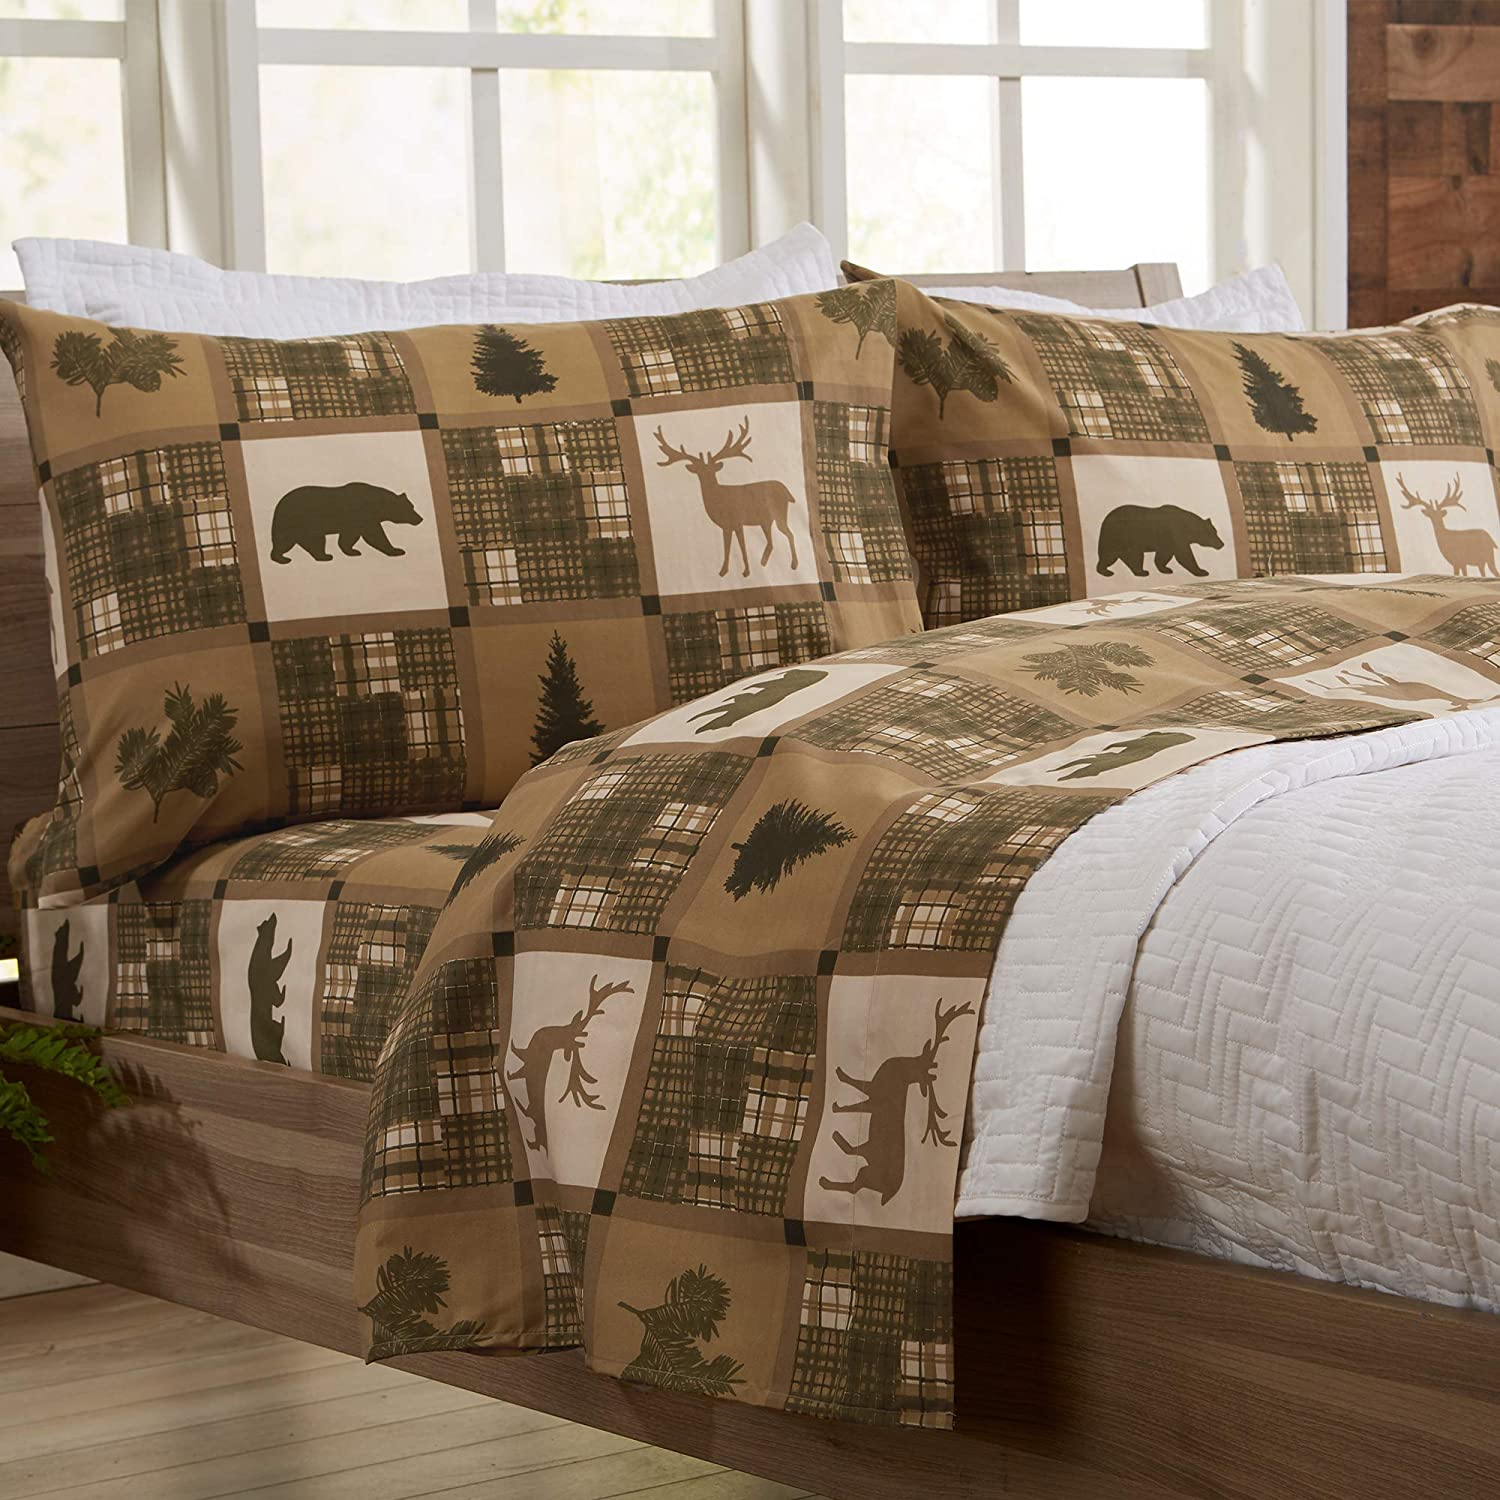 Great Bay Home 4-Piece Lodge Printed Ultra-Soft Microfiber Sheet Set. Beautiful Patterns Drawn from Nature, Comfortable, All-Season Bed Sheets. (Queen, Stonehurst)